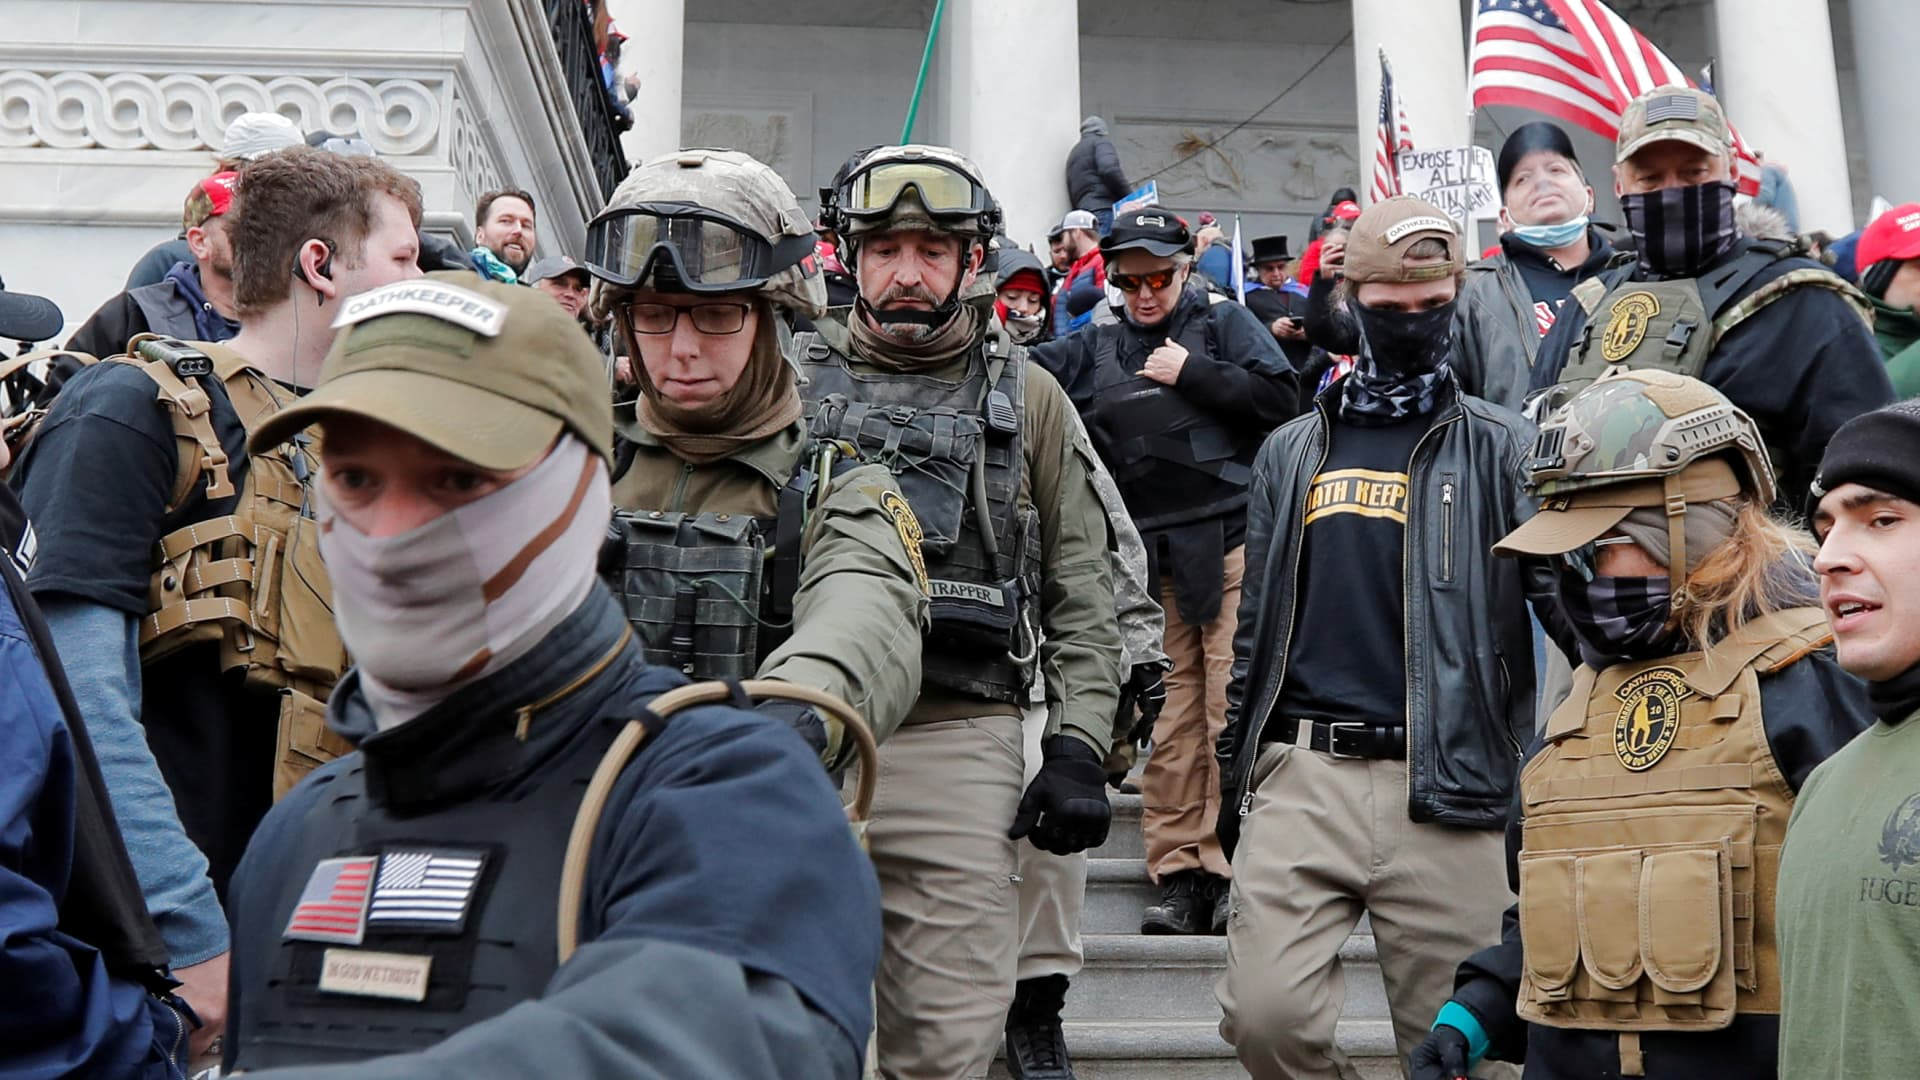 Jessica Marie Watkins (2nd from L) and Donovan Ray Crowl (Center), both from Ohio, march down the east front steps of the U.S. Capitol with the Oath Keepers militia group among supporters of U.S. President Donald Trump in Washington, January 6, 2021. Both have since been indicted by federal authorities for their roles in the siege on the U.S. Capitol.